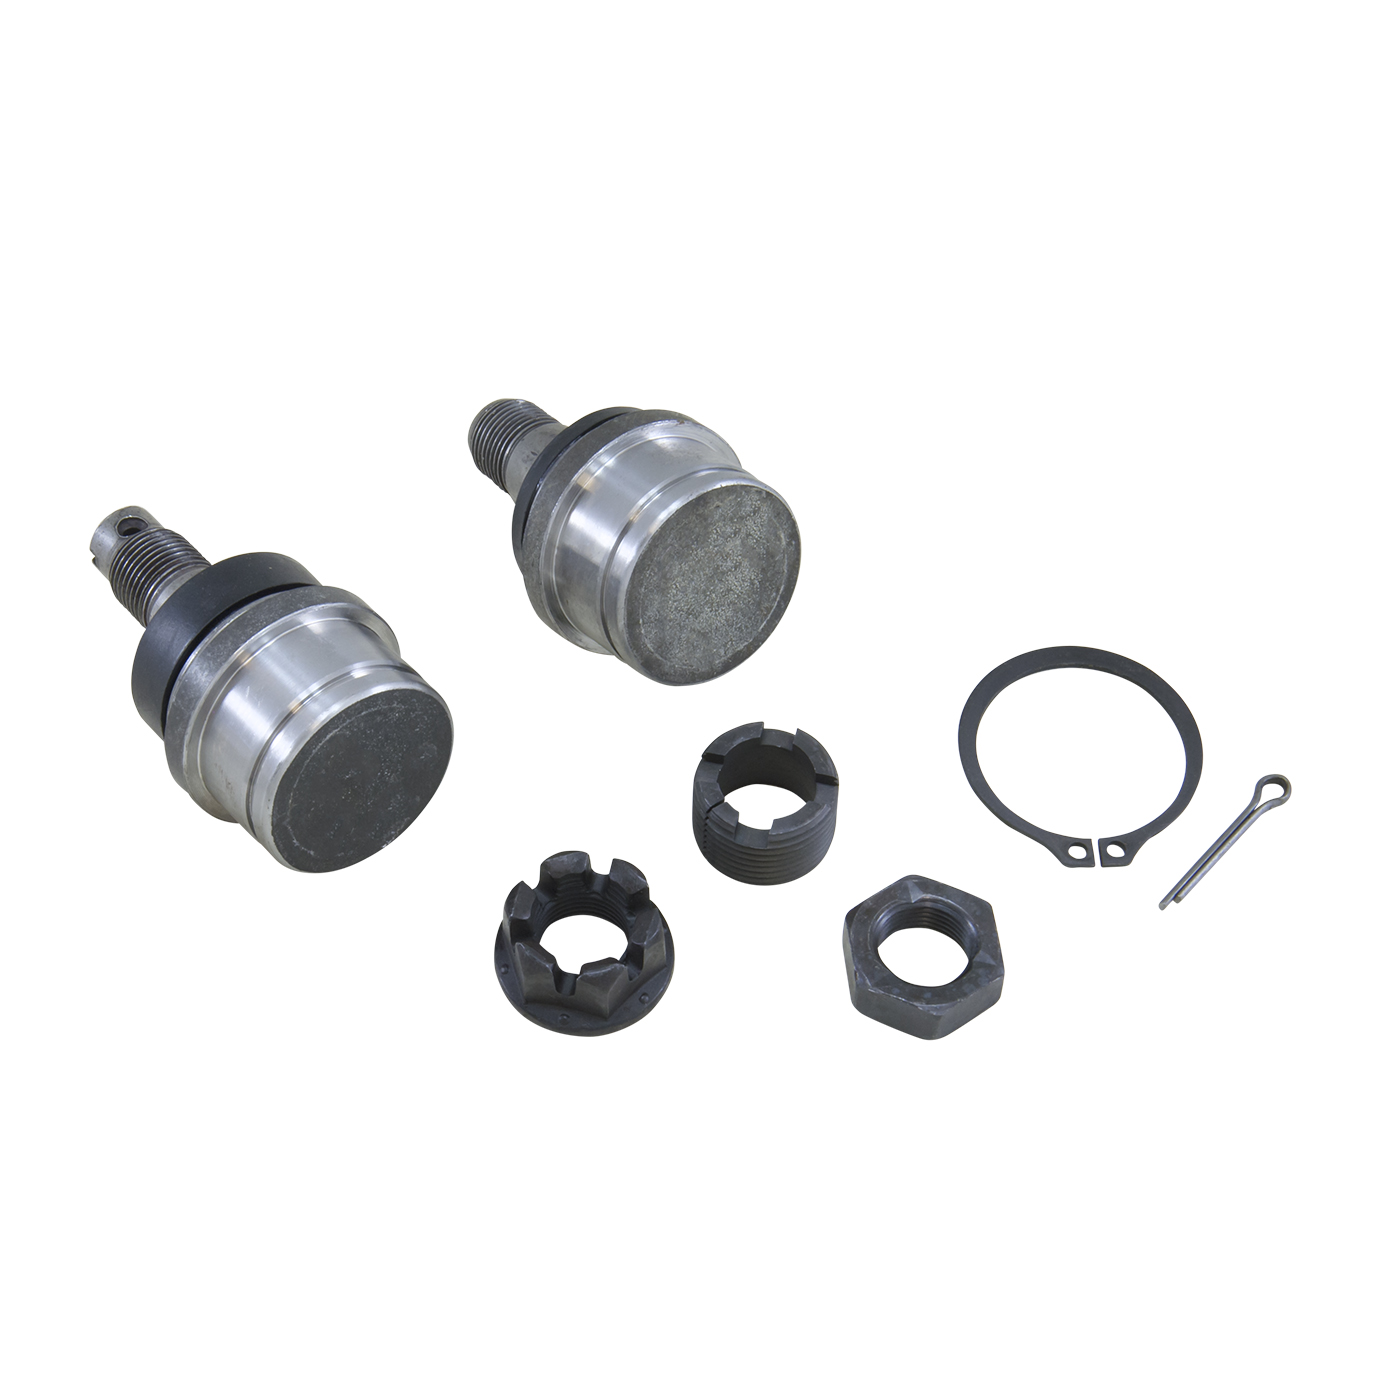 YSPBJ-011 - Ball Joint kit for Dana 30, Dana 44 & GM 8.5